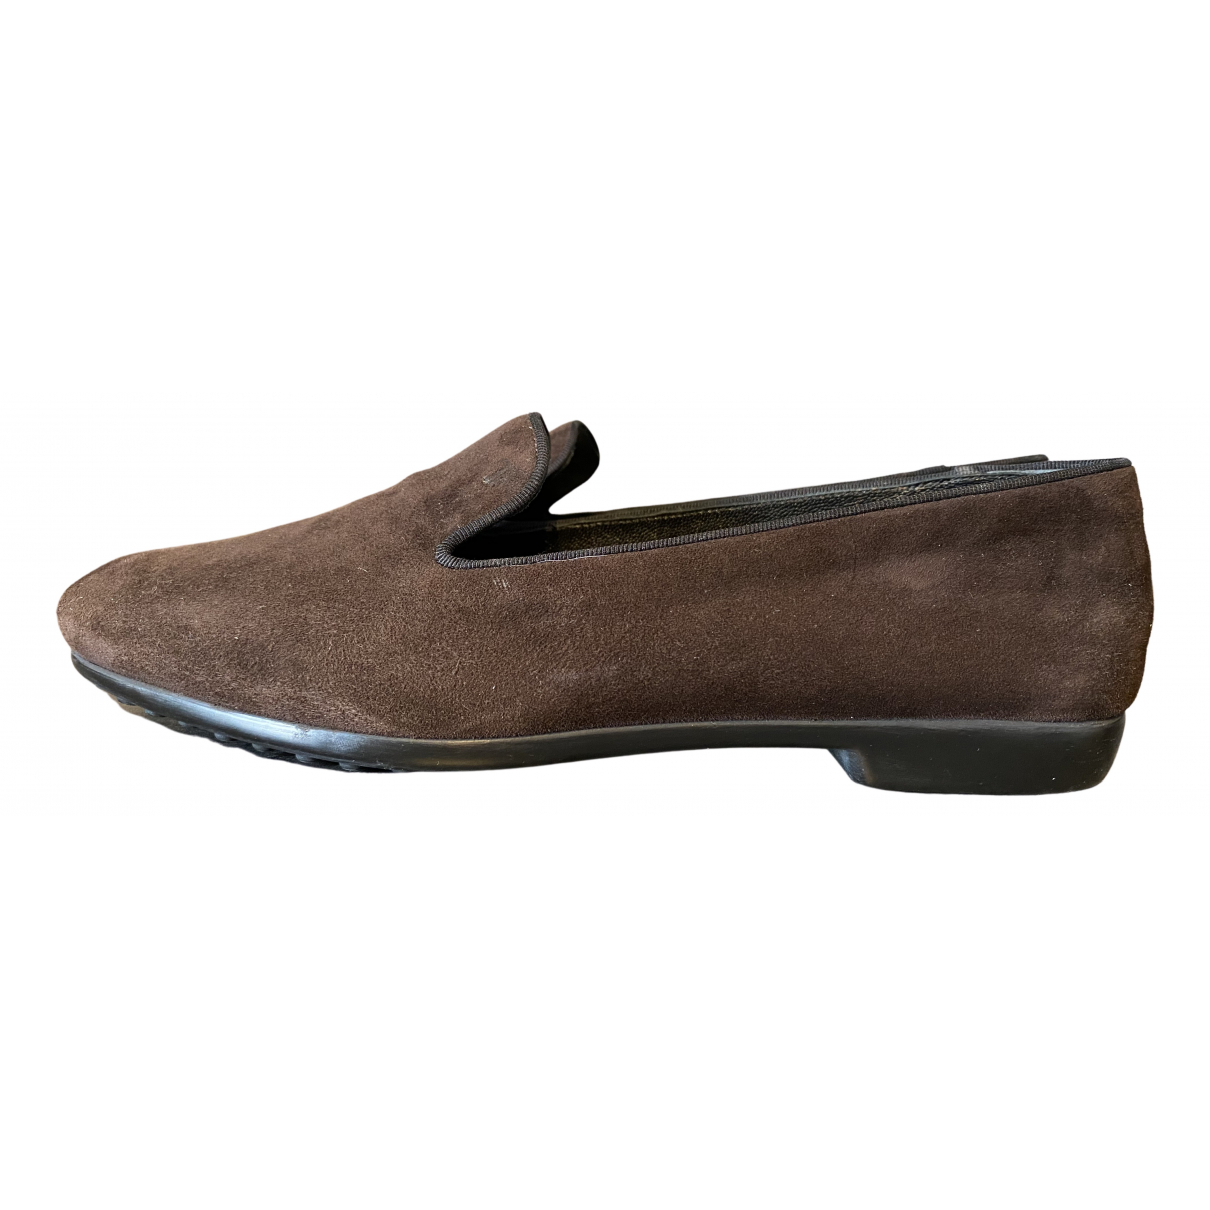 Tod's Gommino Brown Suede Flats for Women 39 EU